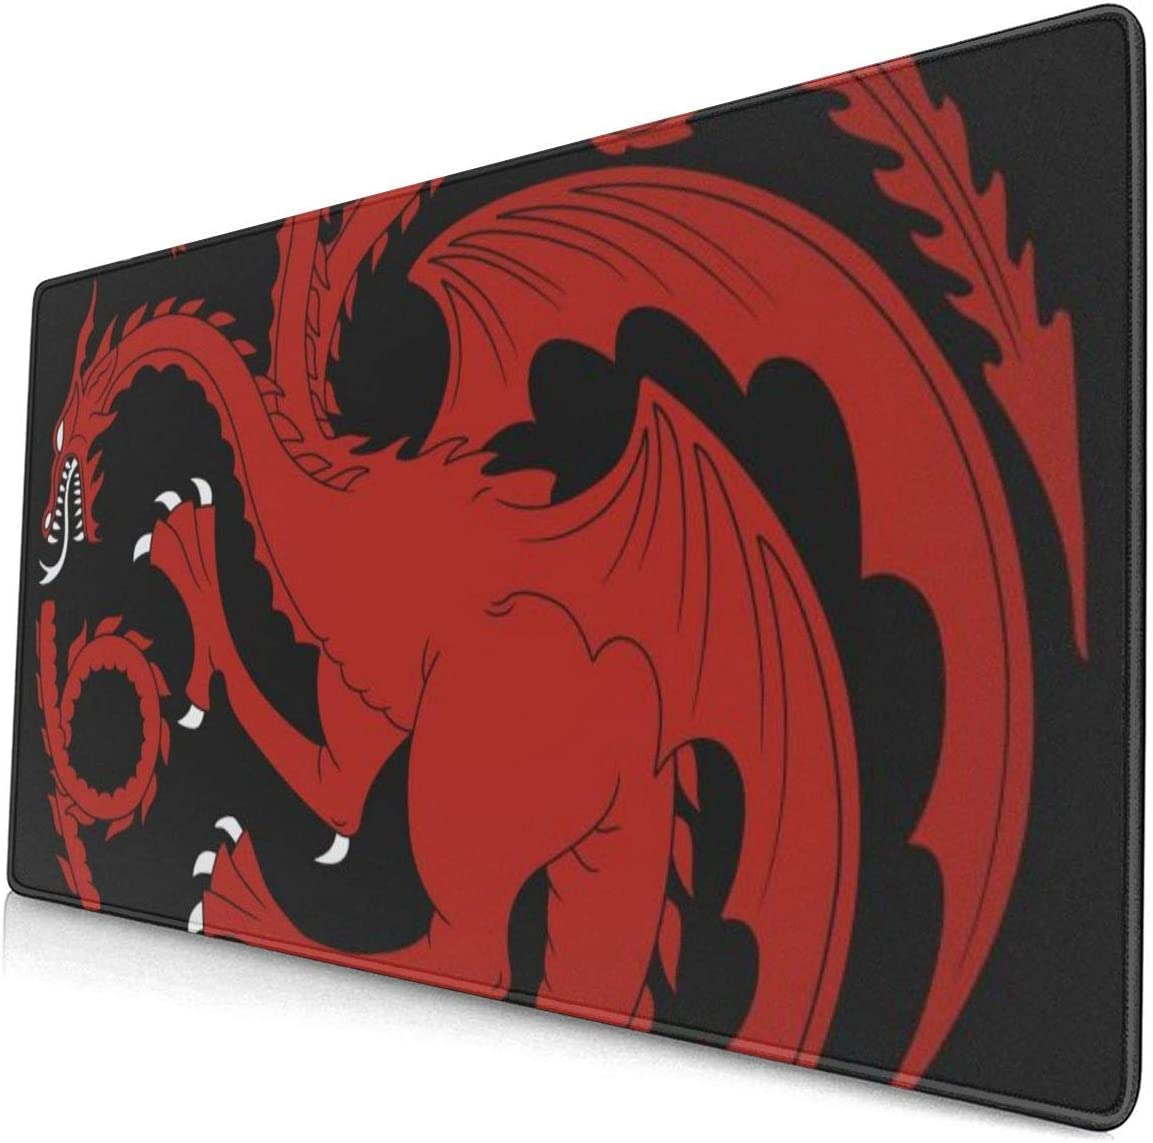 Redraw of A Targaryen Heraldic Sign 15.8x29.5 inches Non-Slip Mousepad Computer /& PC Mouse pad Large